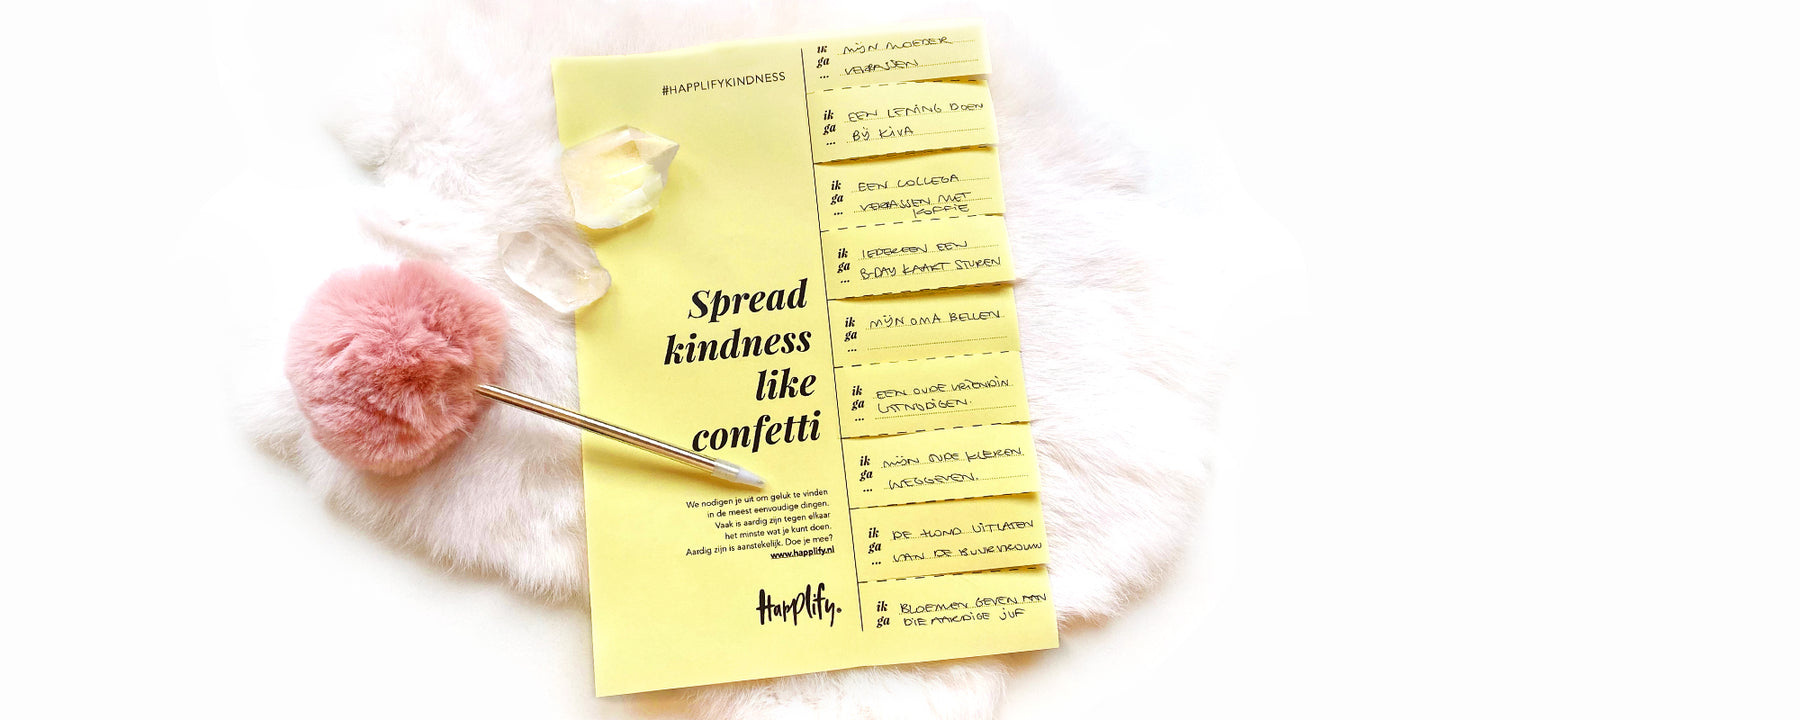 Spread kindness like confetti. Doe je mee?